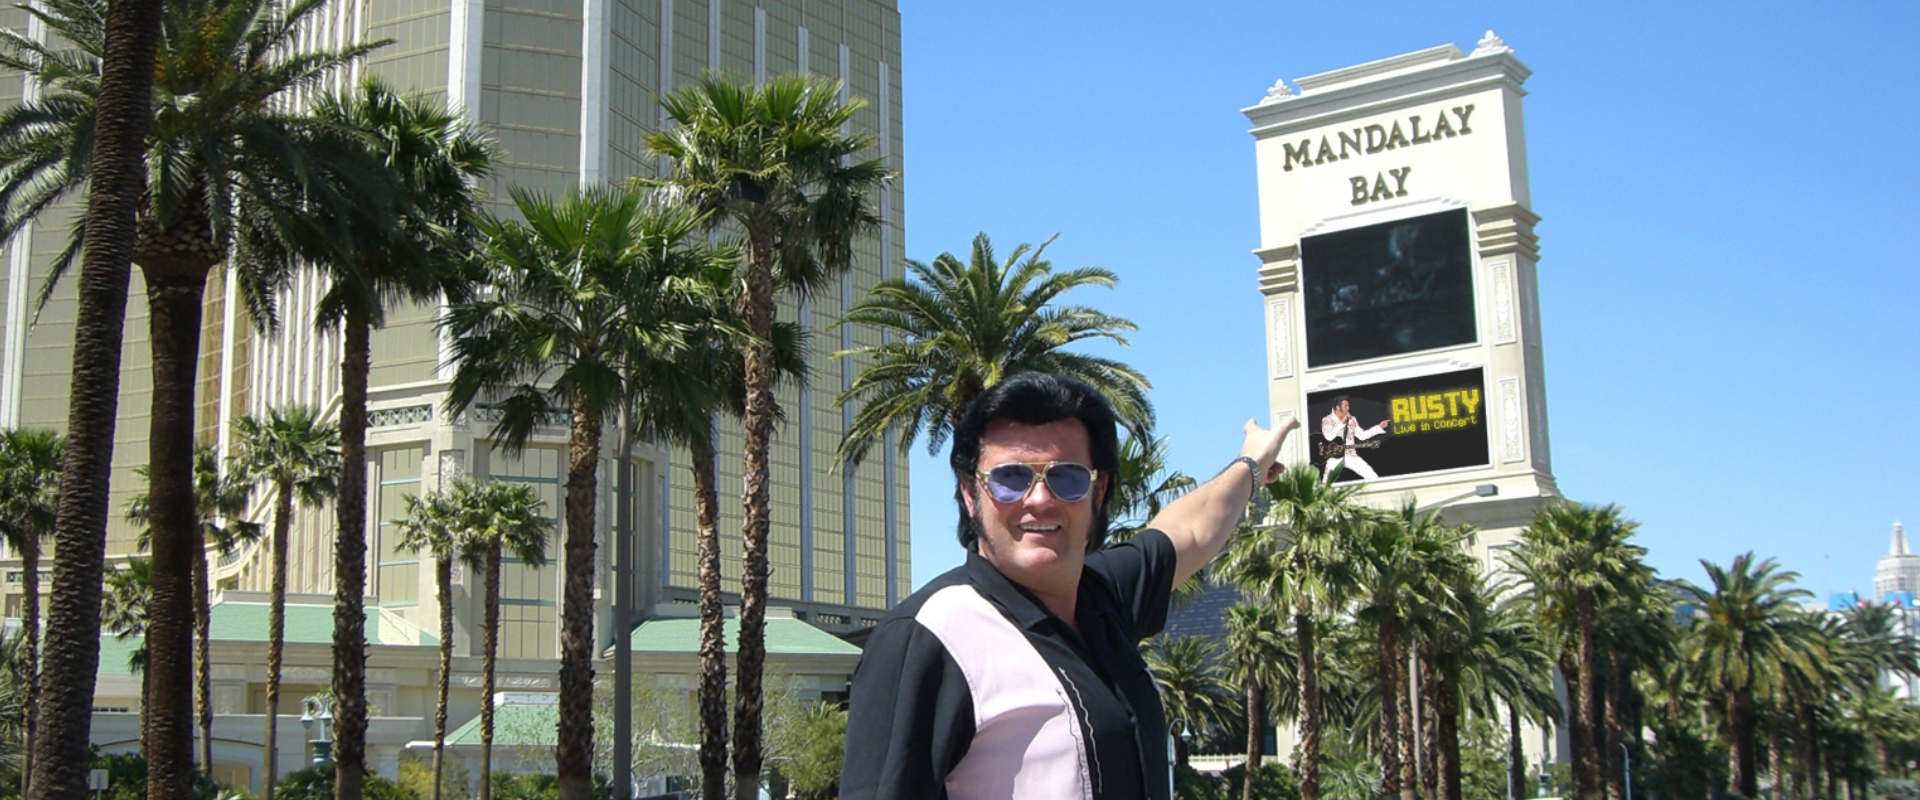 Rusty vor dem Mandalay Bay Hotel in Palm Springs, Elvis Tribute Artist im Forum Altötting